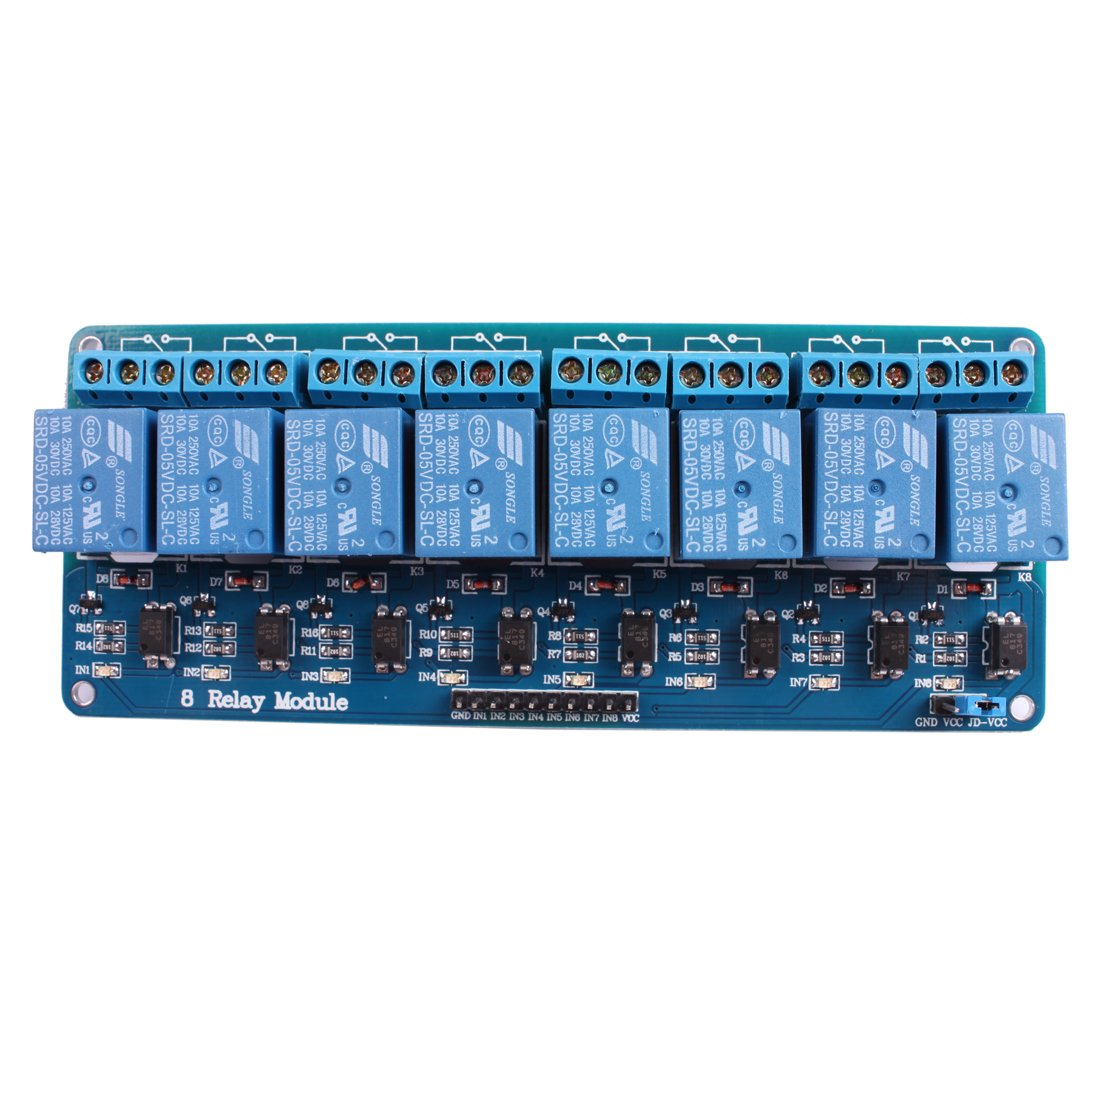 Jbtek 8 Channel Dc 5v Relay Module For Arduino Raspberry On Off Problem Pi Dsp Avr Pic Arm Computers Accessories